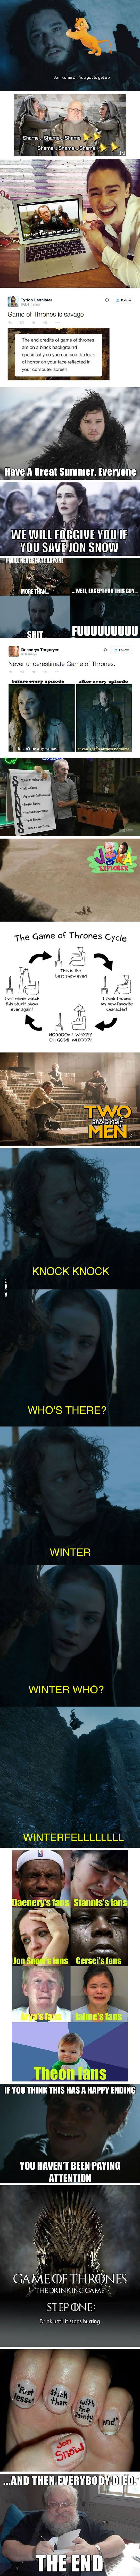 game of thrones season 5 episode 8 last scene